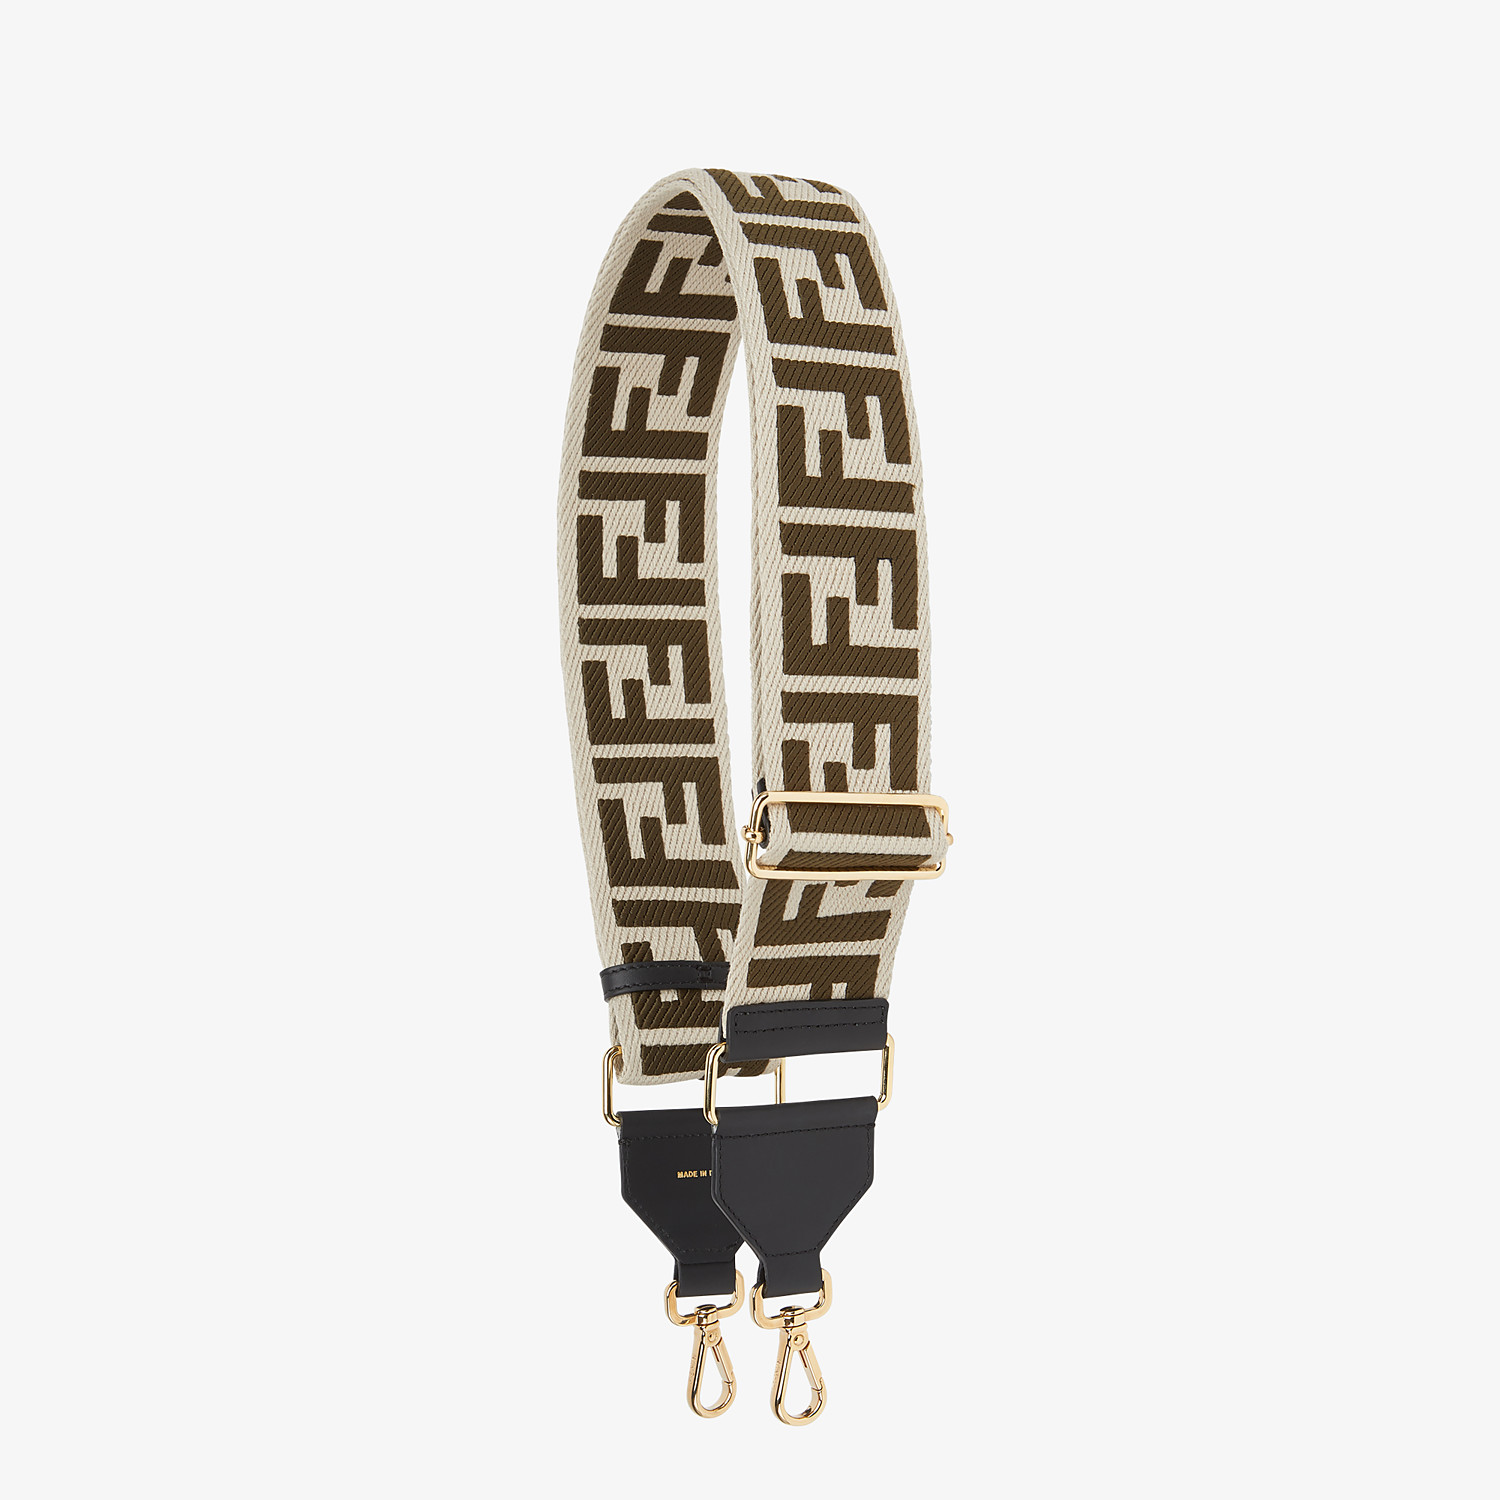 FENDI STRAP YOU - Beige canvas shoulder strap - view 1 detail